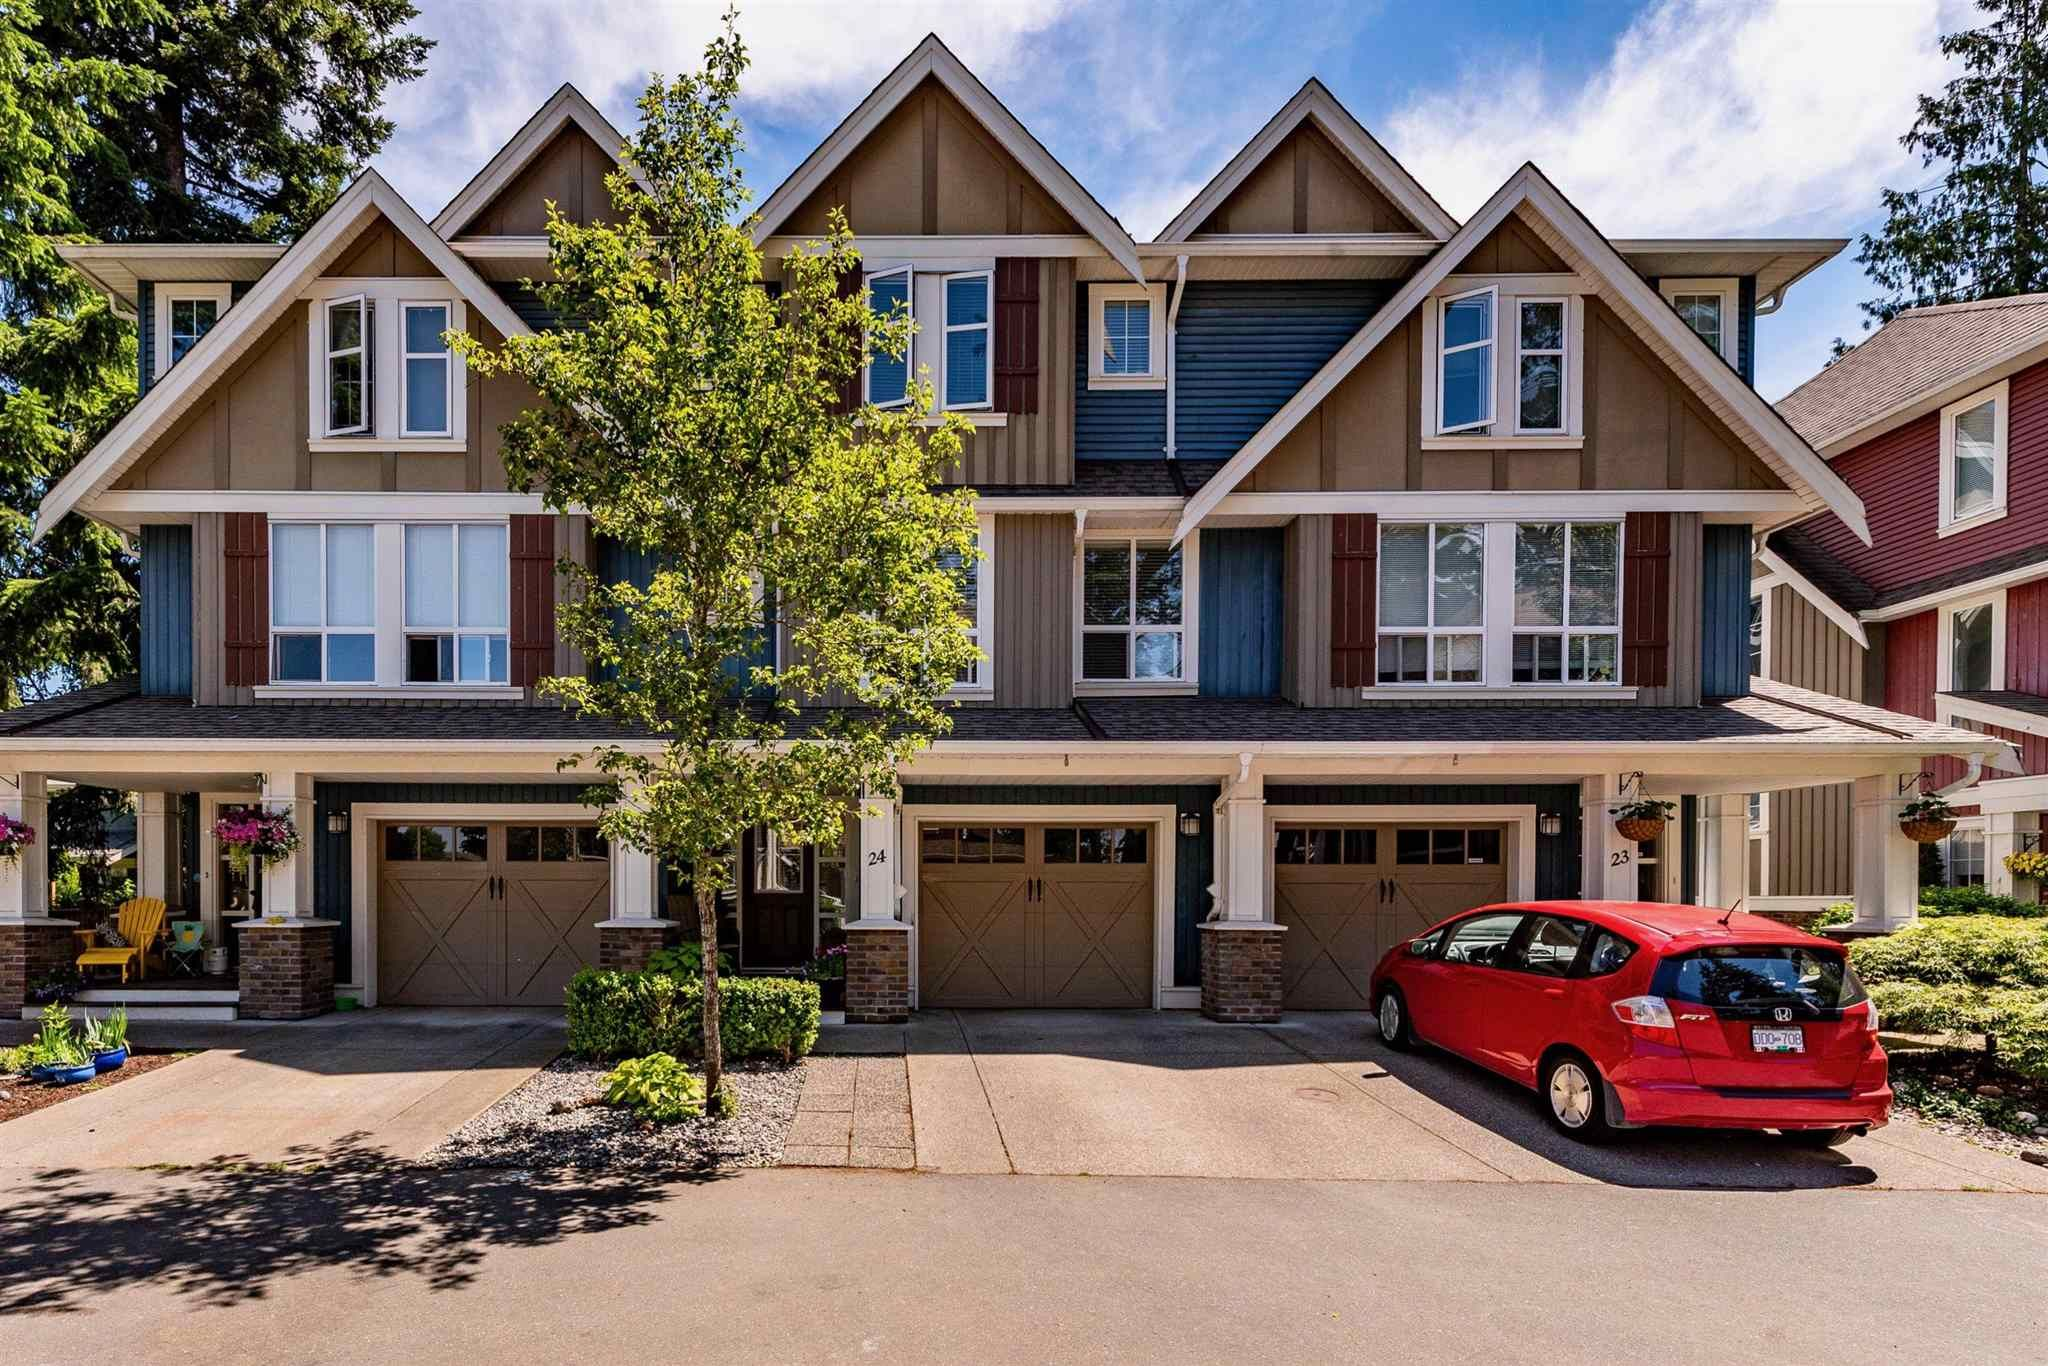 """Main Photo: 24 5837 SAPPERS Way in Chilliwack: Vedder S Watson-Promontory Townhouse for sale in """"The Woods"""" (Sardis)  : MLS®# R2596569"""